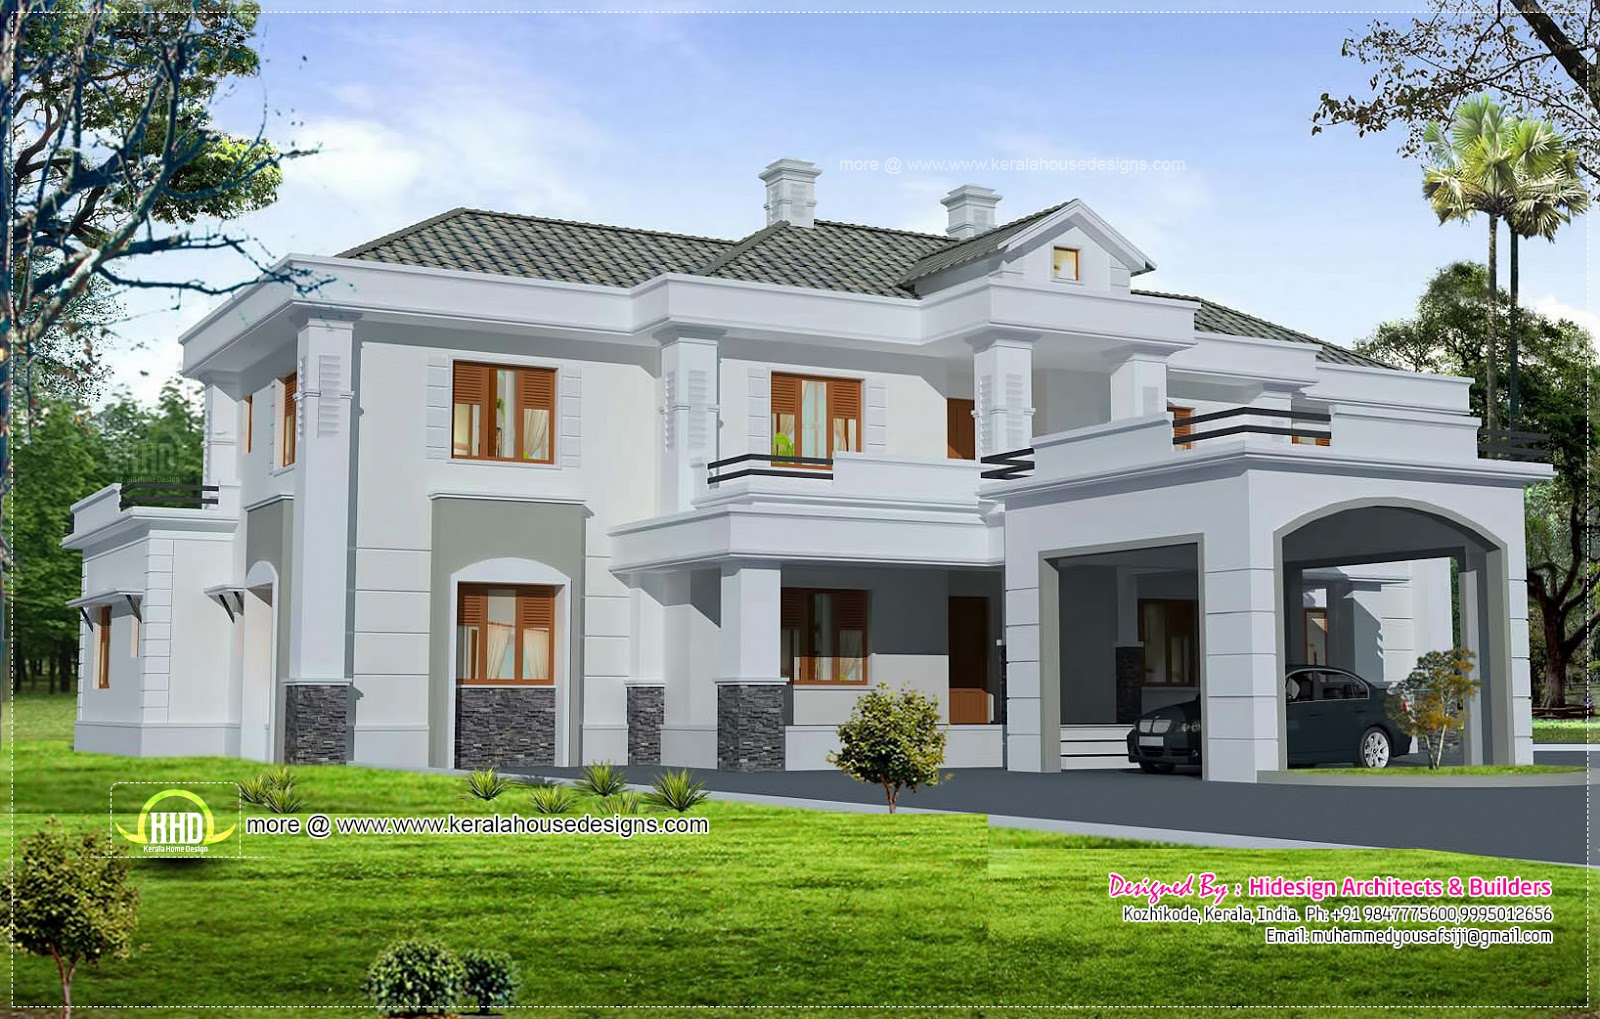 Style Home Design With Court Yard Kerala Home Design And Floor Plans